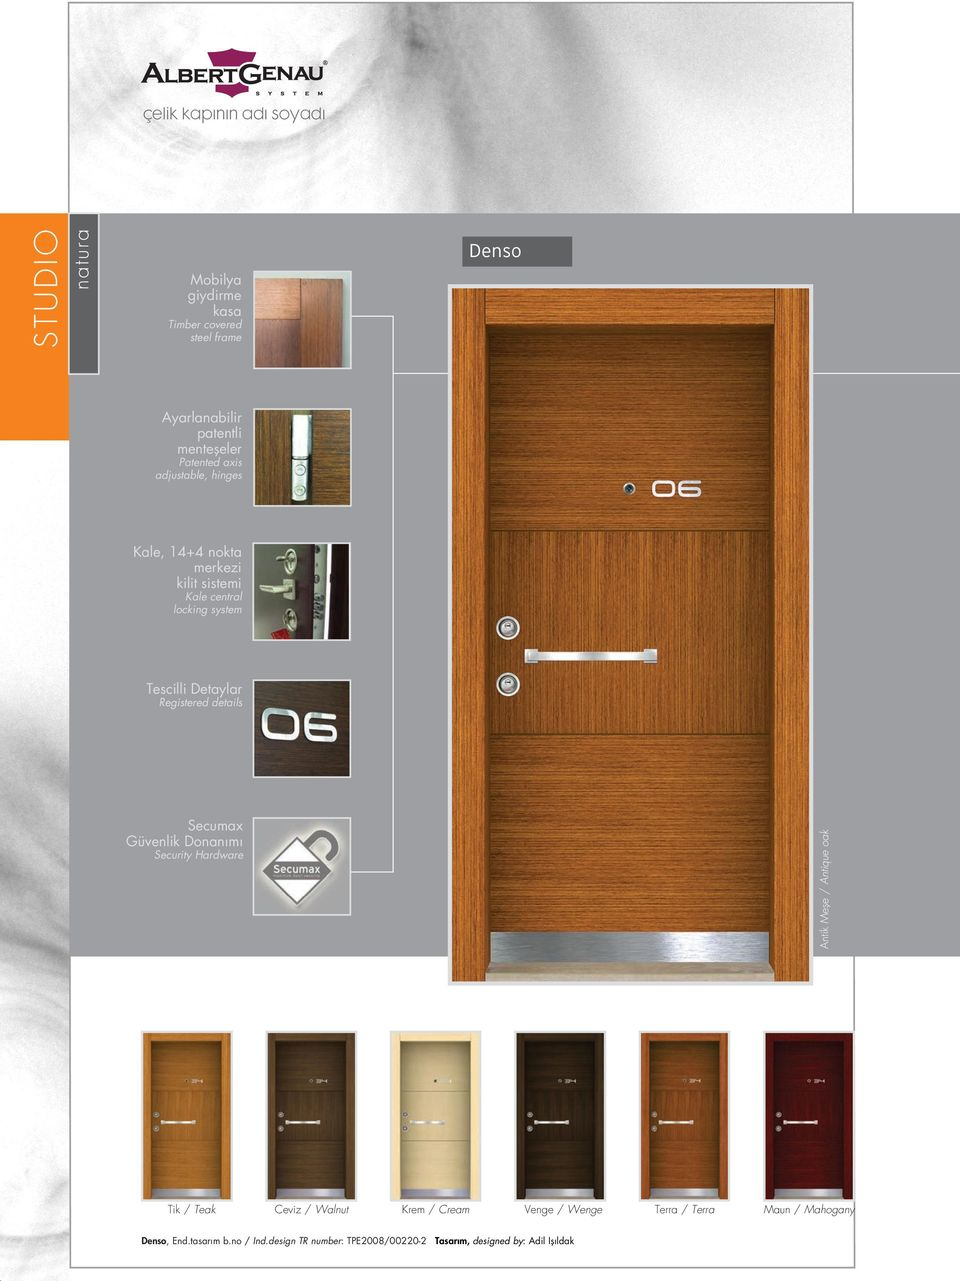 Registered details Secumax Güvenlik Donan m Security Hardware Antik Mefle / Antique oak Tik / Teak Krem / Cream Venge /